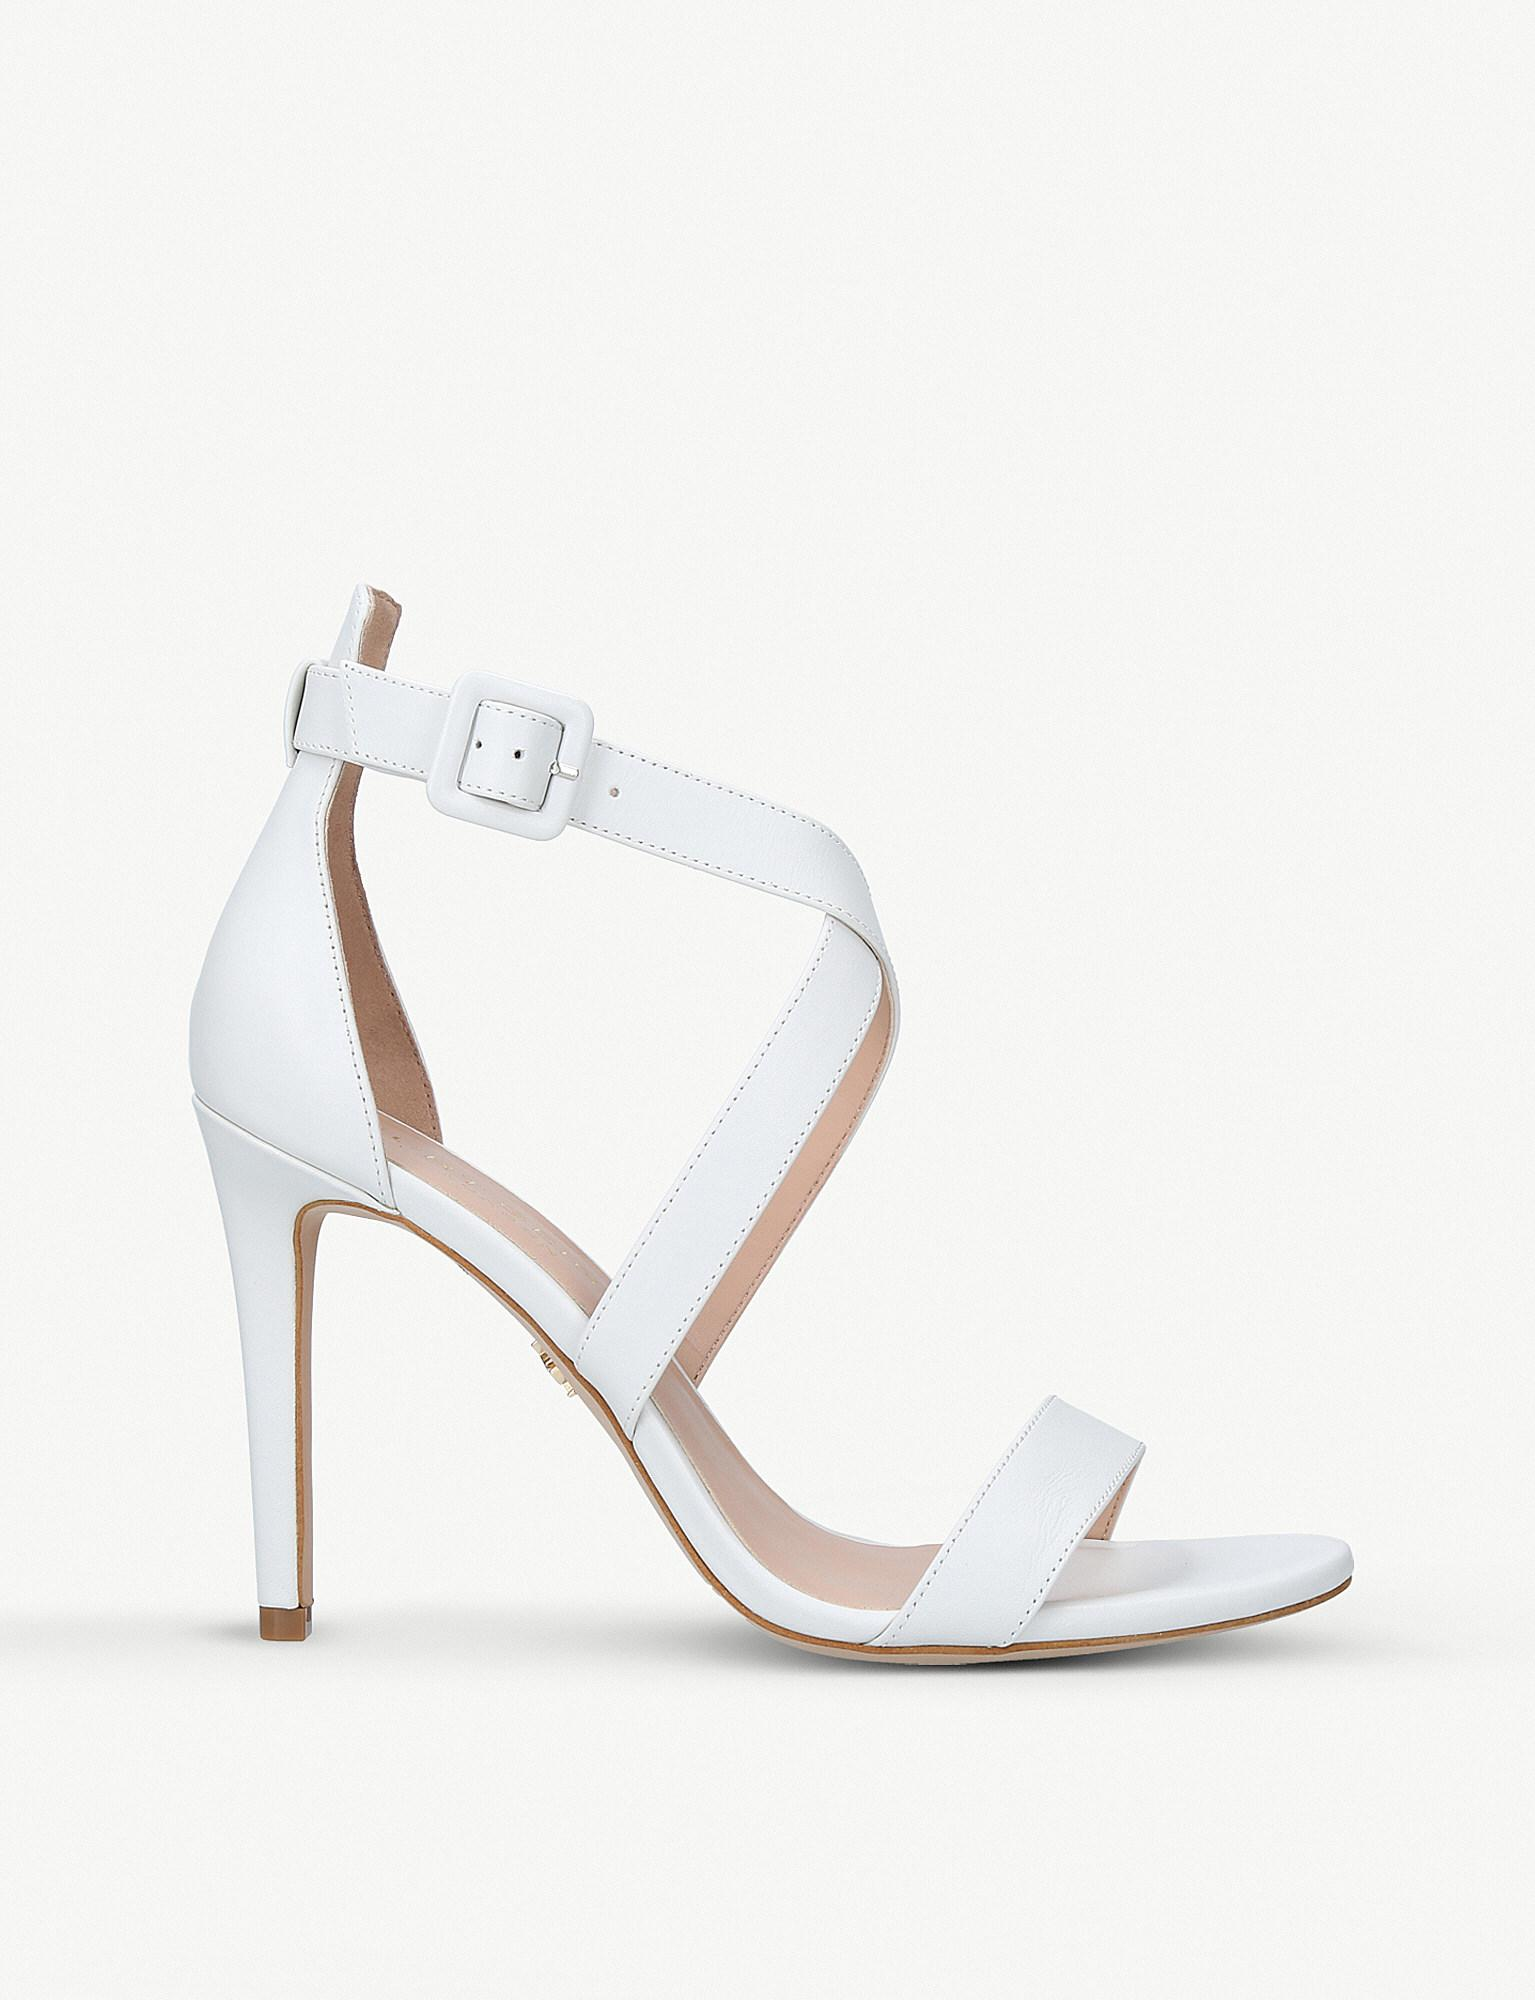 Discount Cheapest Price Kurt Geiger Women's Knightsbridge Cross Strap Leather Heeled Sandals Free Shipping Sale Buy Cheap Professional Cheap Excellent LPCoFm